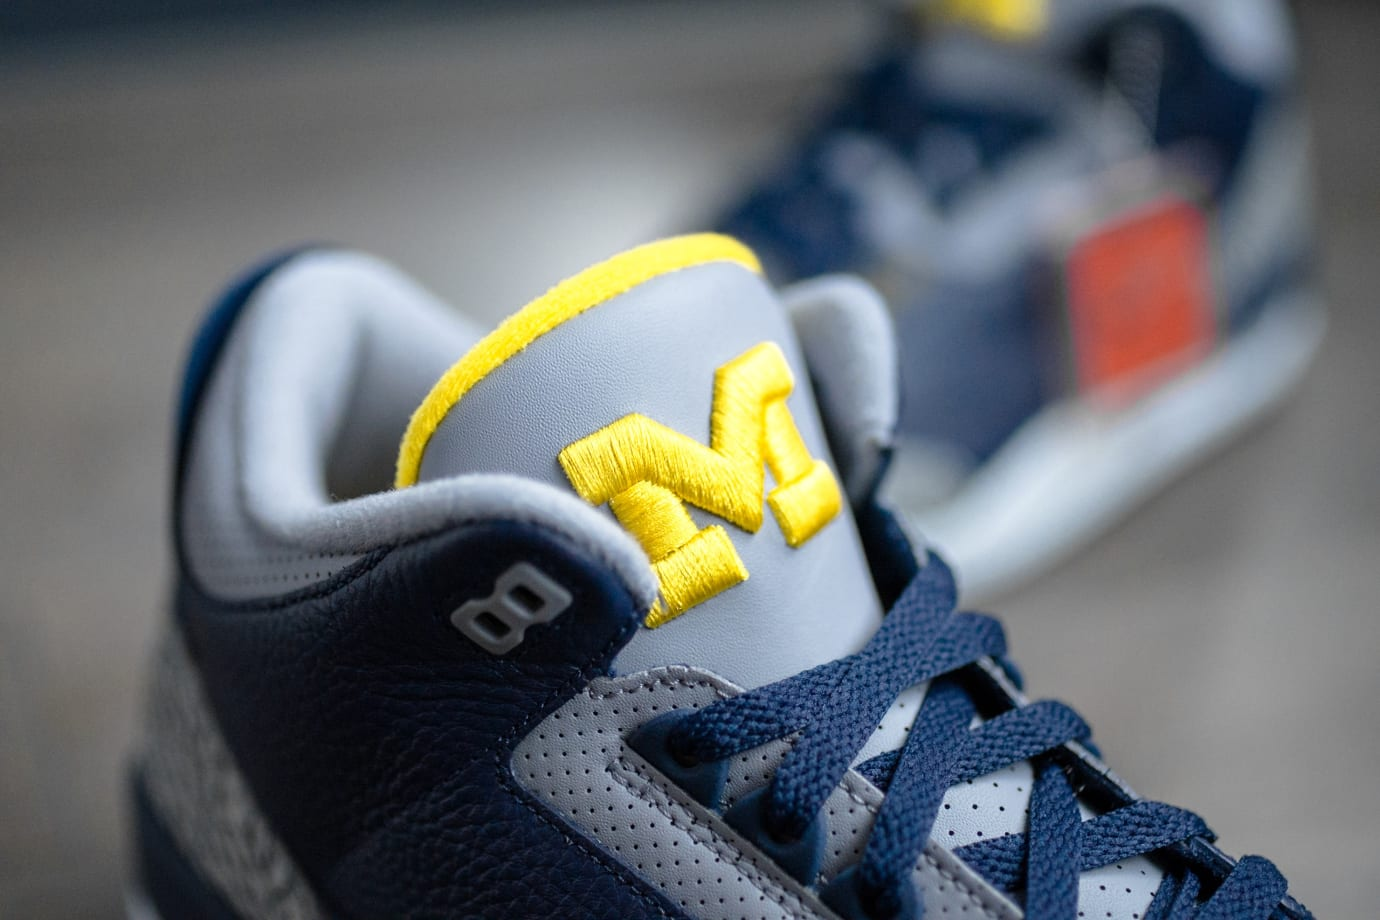 Air Jordan 3 'Michigan' PE (Tongue)